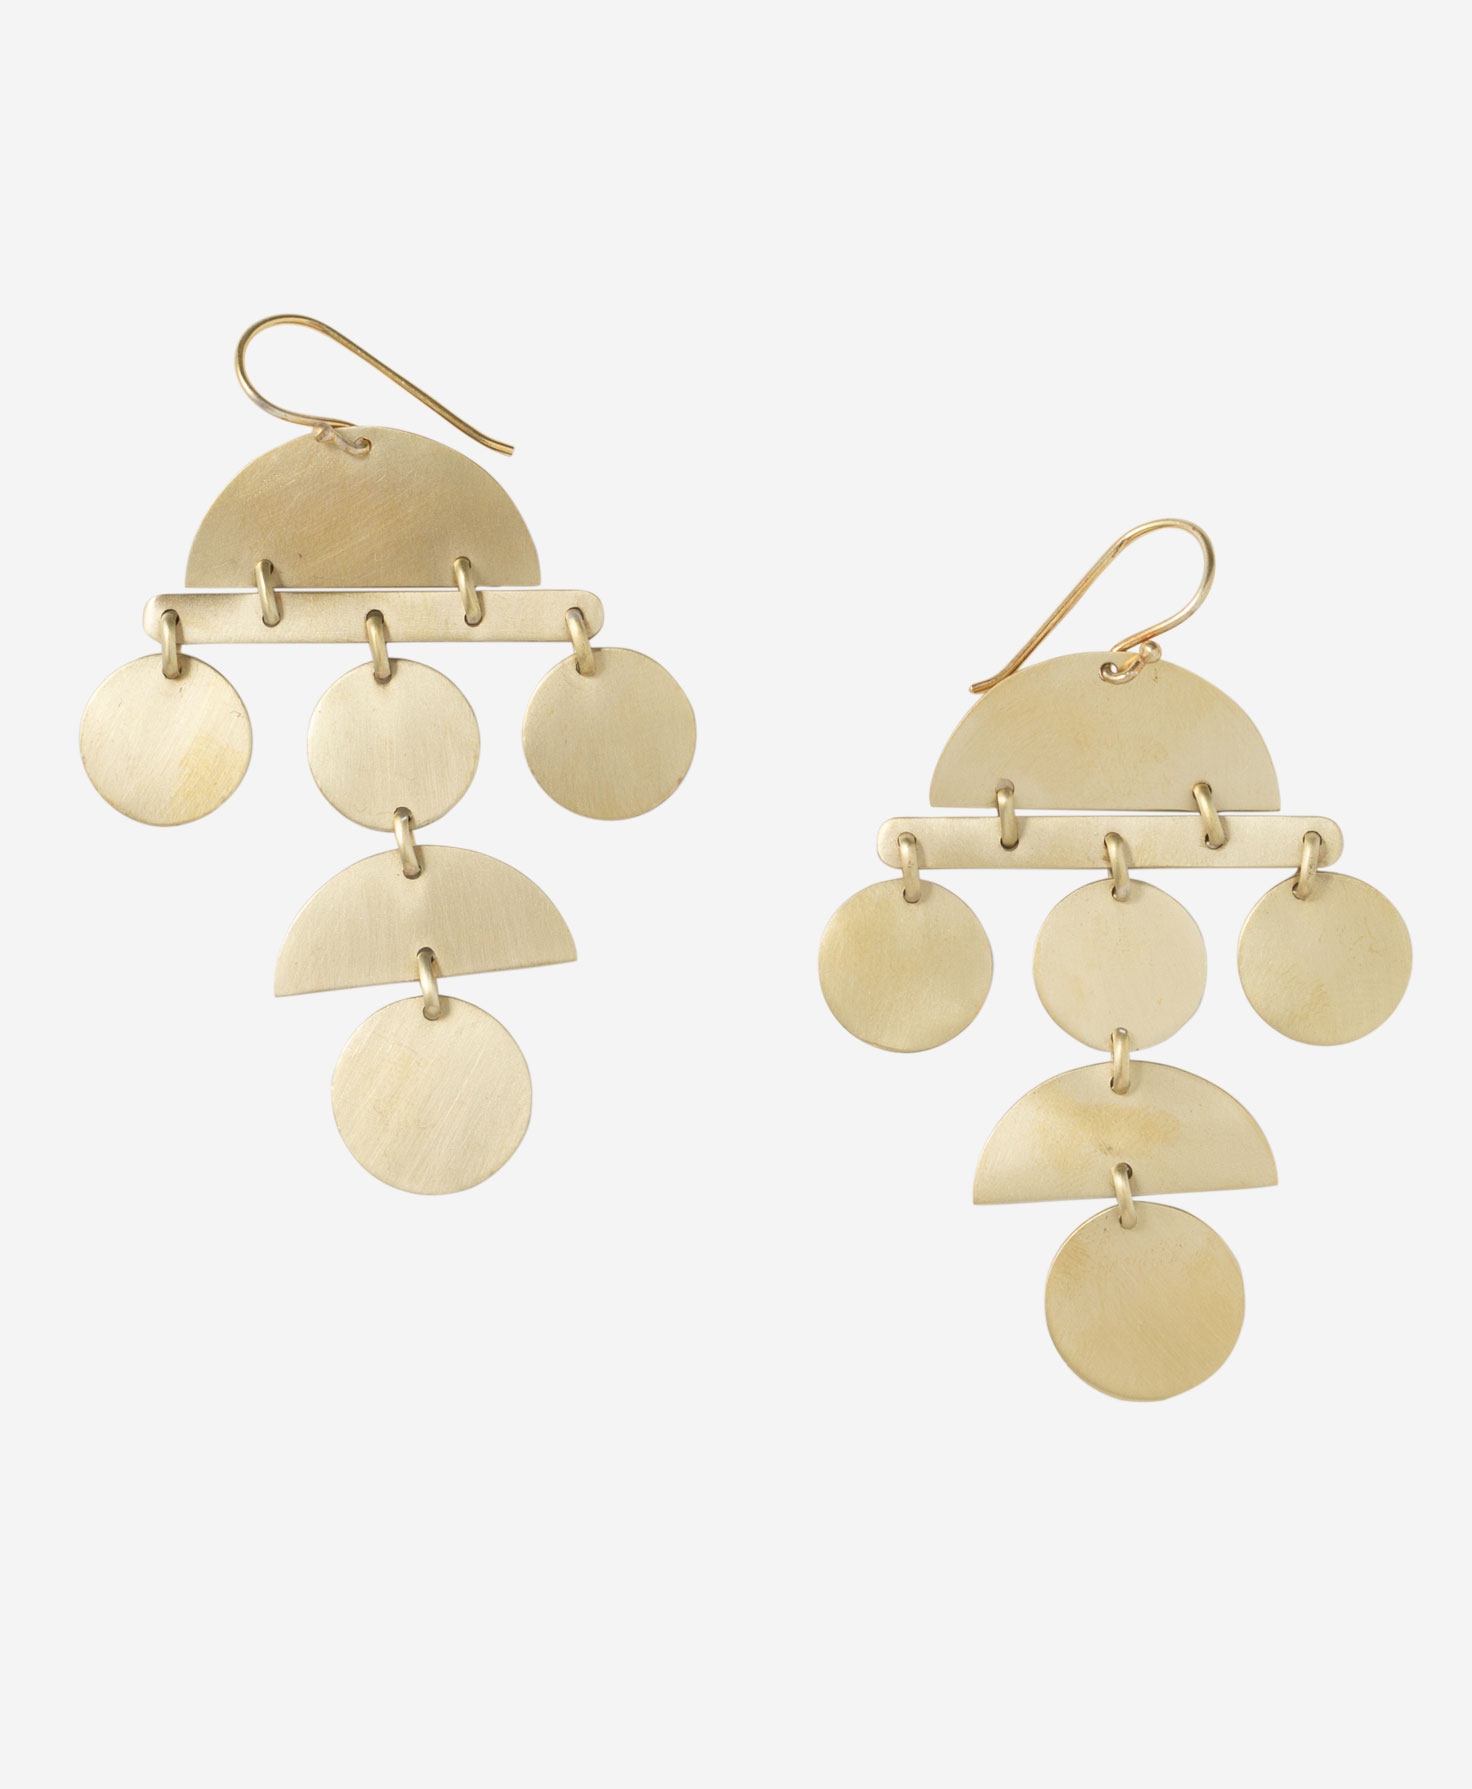 earrings to wear for rehearsal dinner